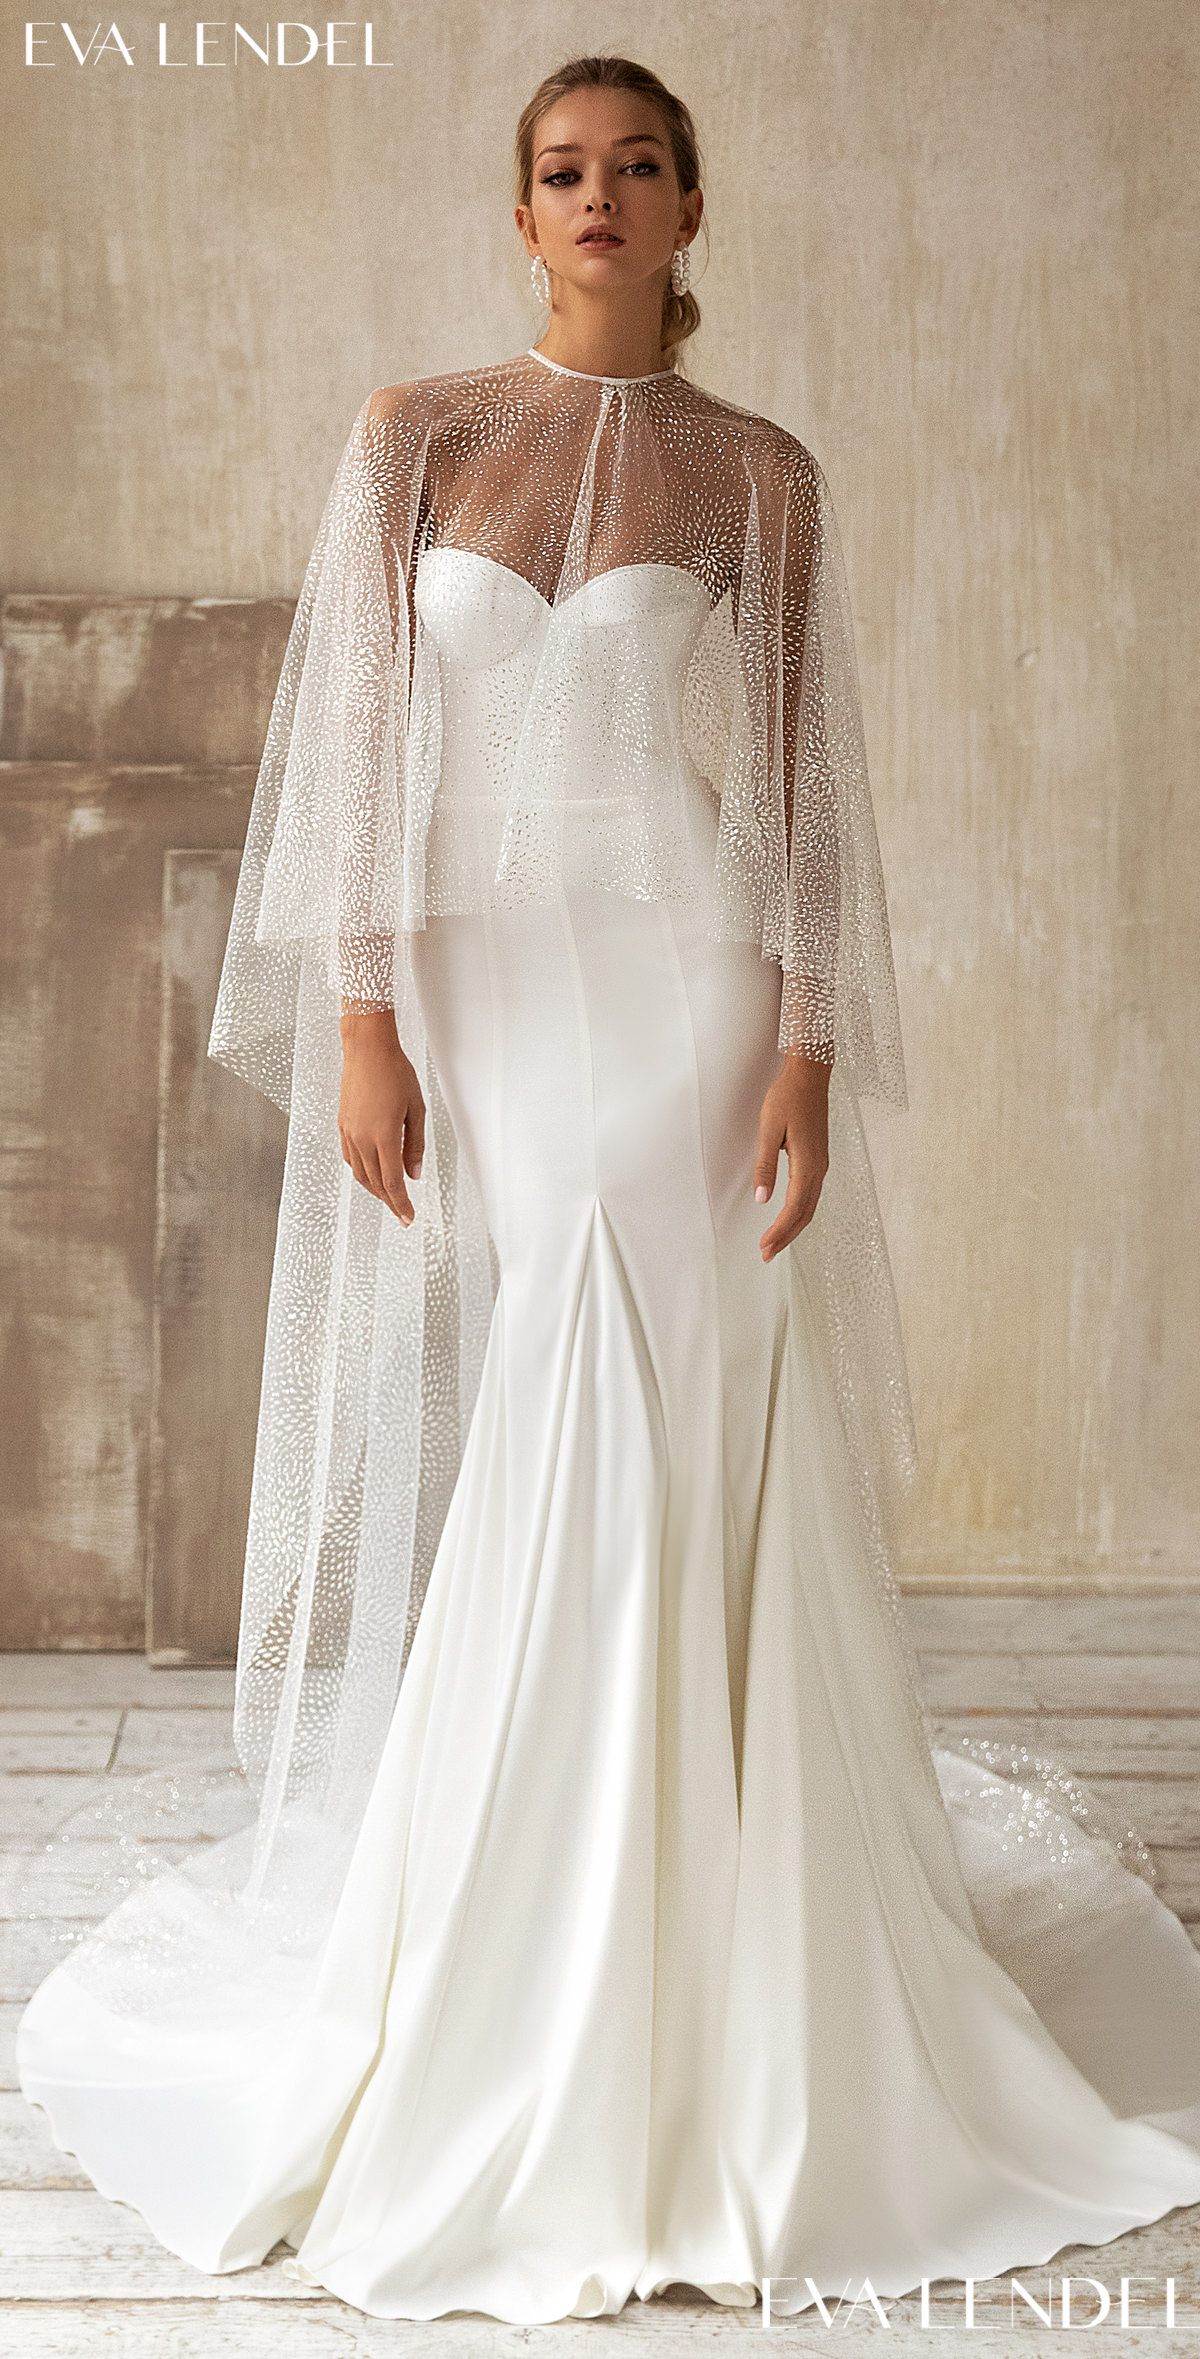 Eva Lendel Wedding Dresses 2021- Less is More Collection -Cory